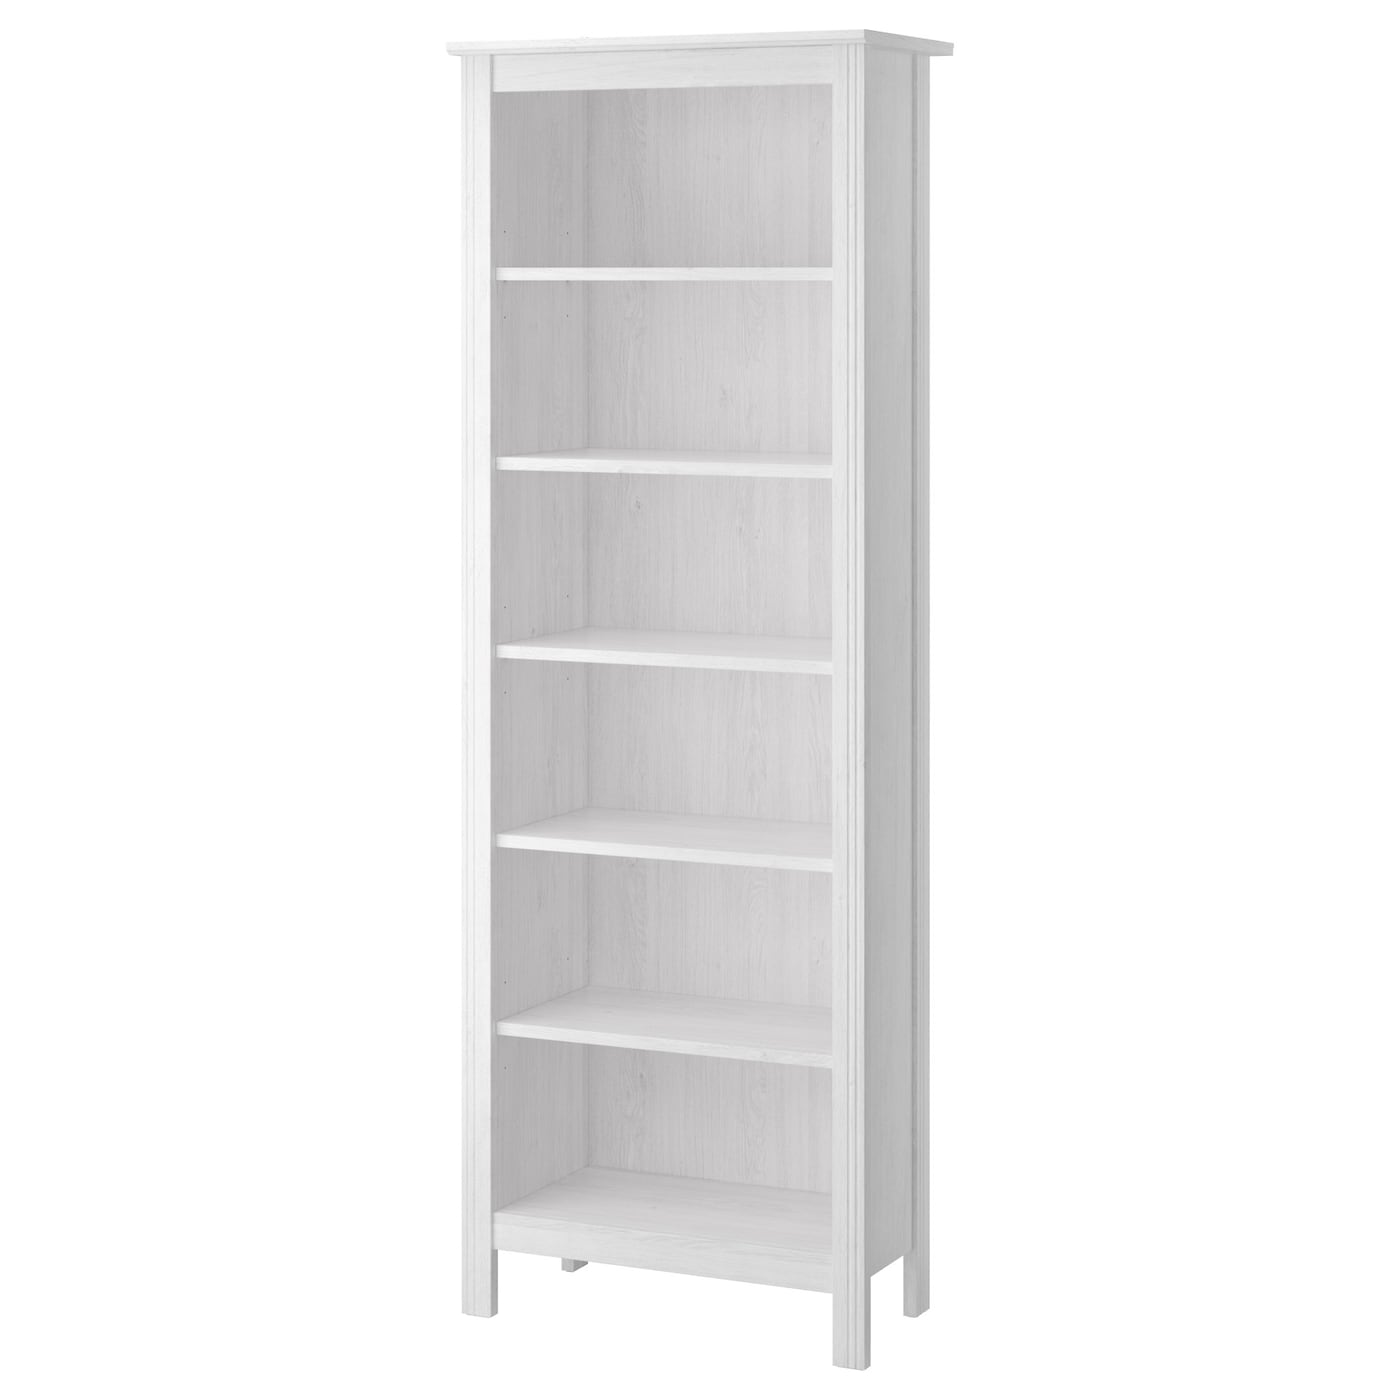 dark comfortable wall white furniture plush saving storage and space interior bookshelf drawers as doors polished style decorations in built sliding with tips s design modern inspiration shelves